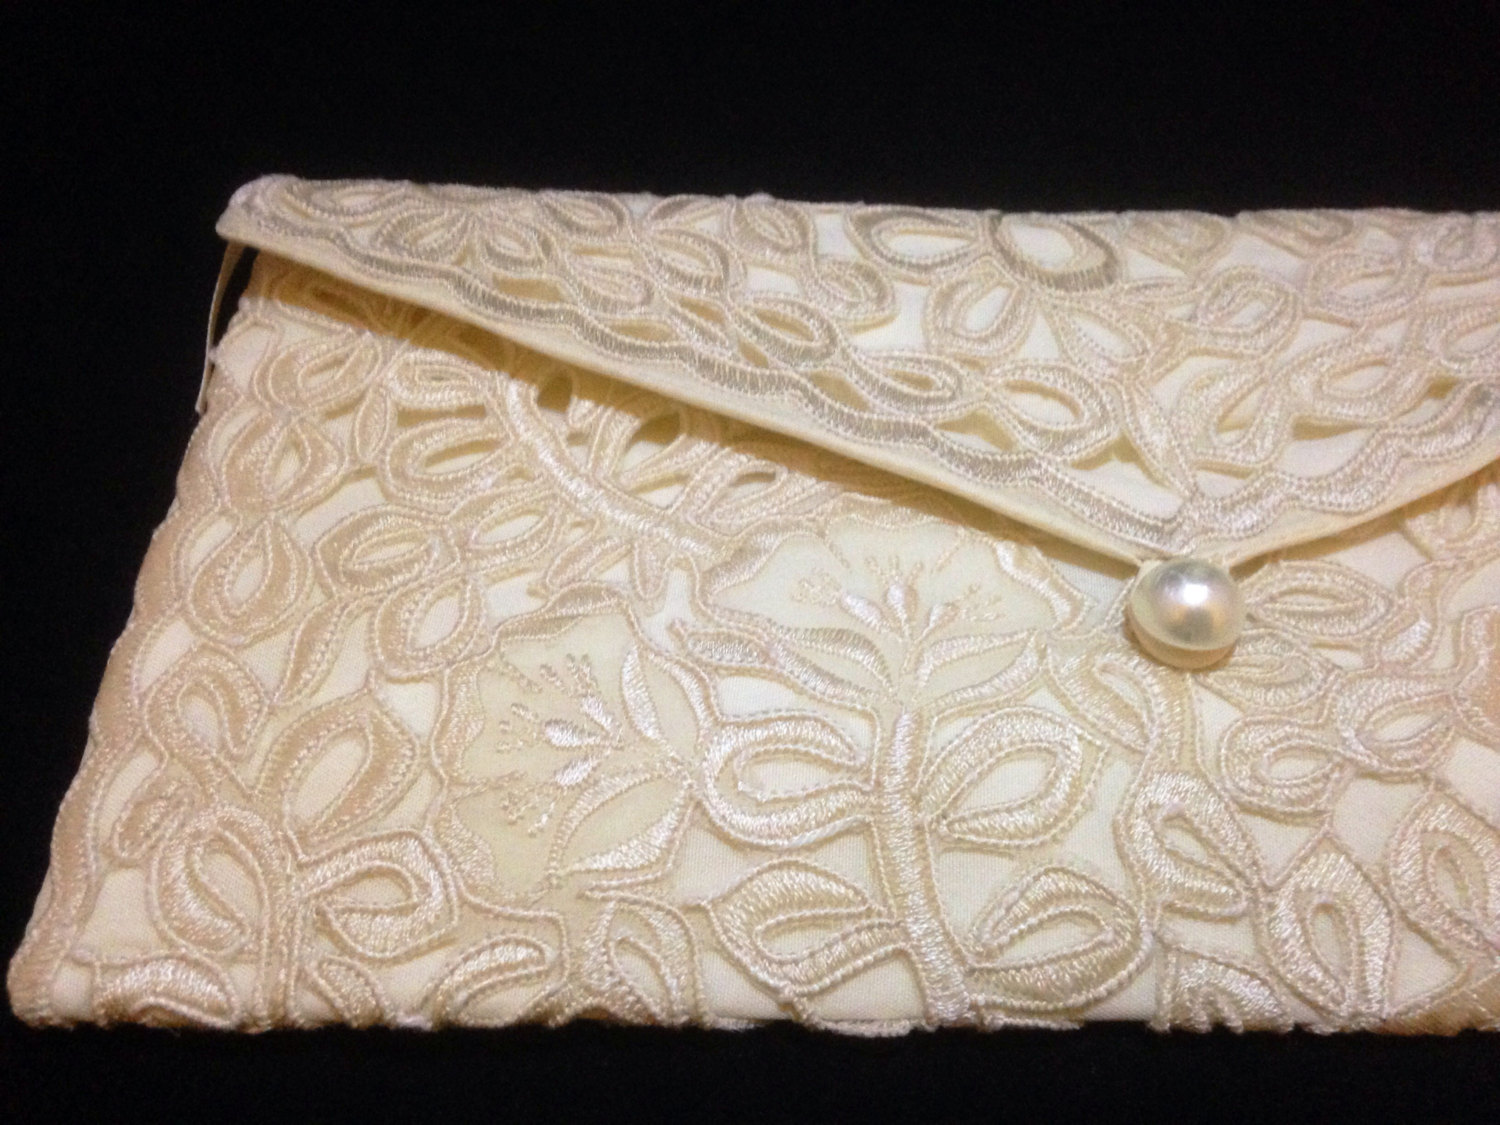 Champagne Lace Clutch Purse- Envelope Clutch Purse- Philippines Cutwork Embroidery- Bridal Clutch Purse- Wedding Clutch- Jusi Silk- Set of 5 (29567106 ADARNA GALLERY) photo